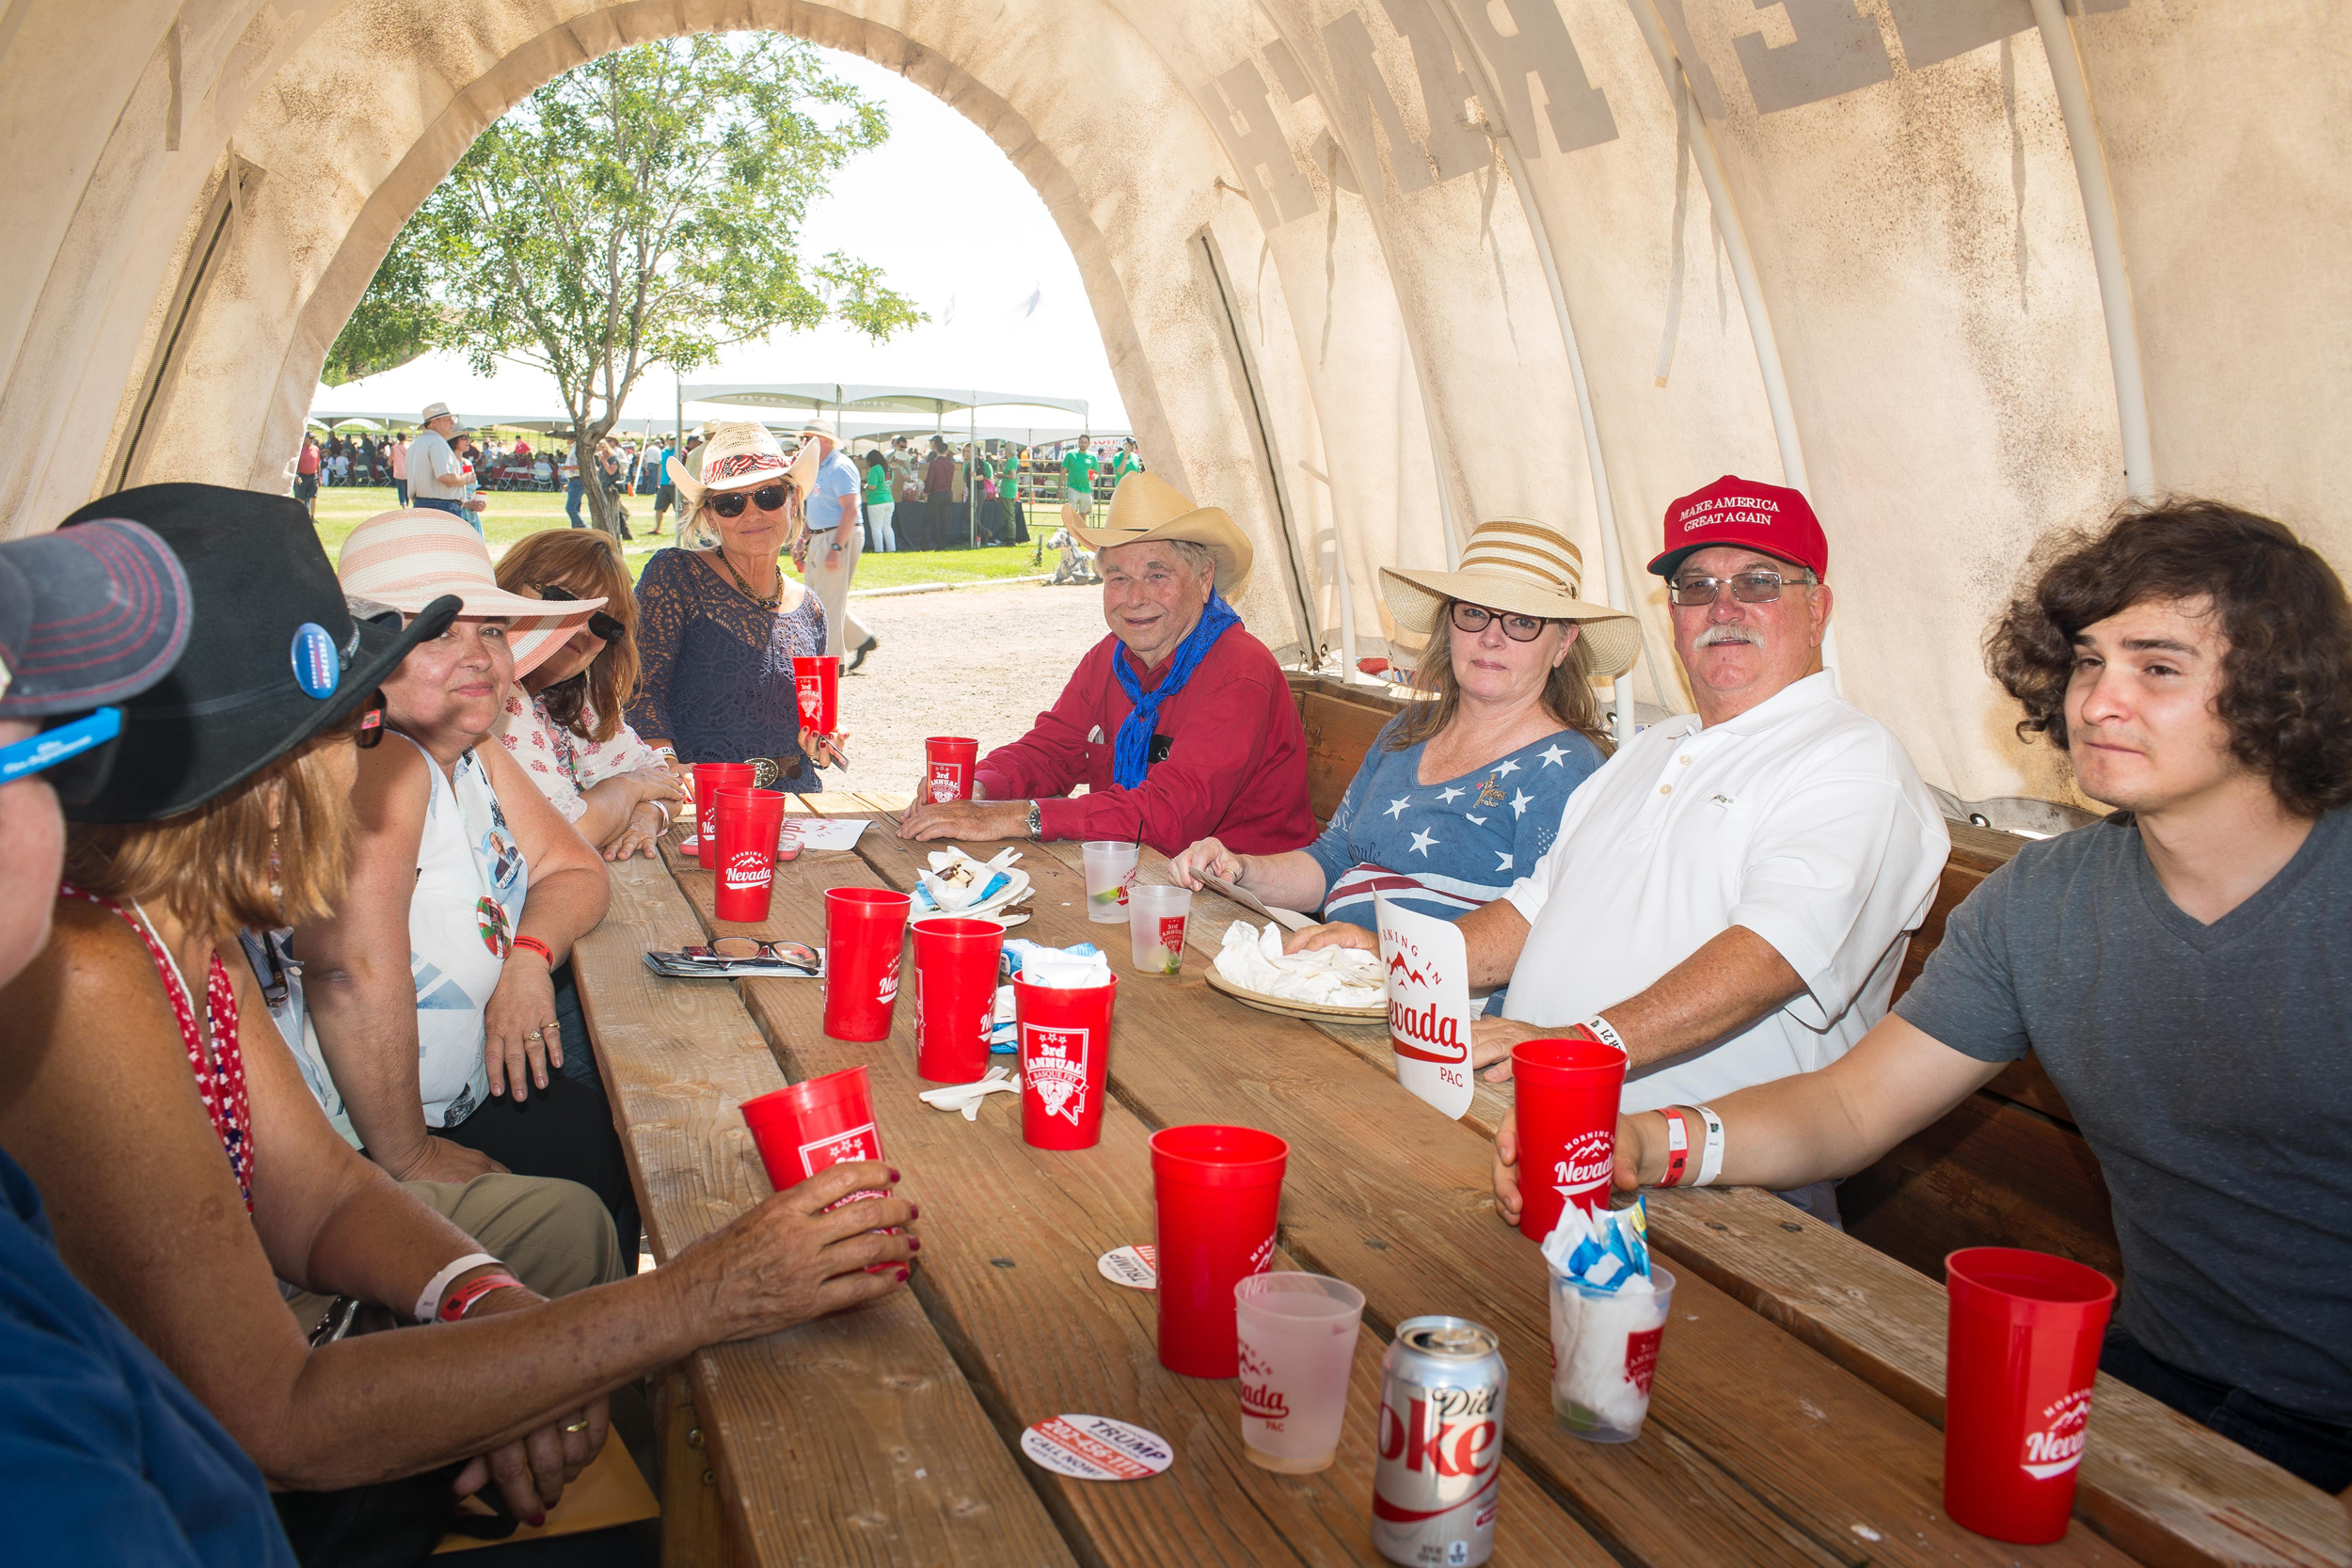 Image: John Mannelly, of Minden, Nevada, at right in white shirt, eats lunch under a covered wagon with friends and family